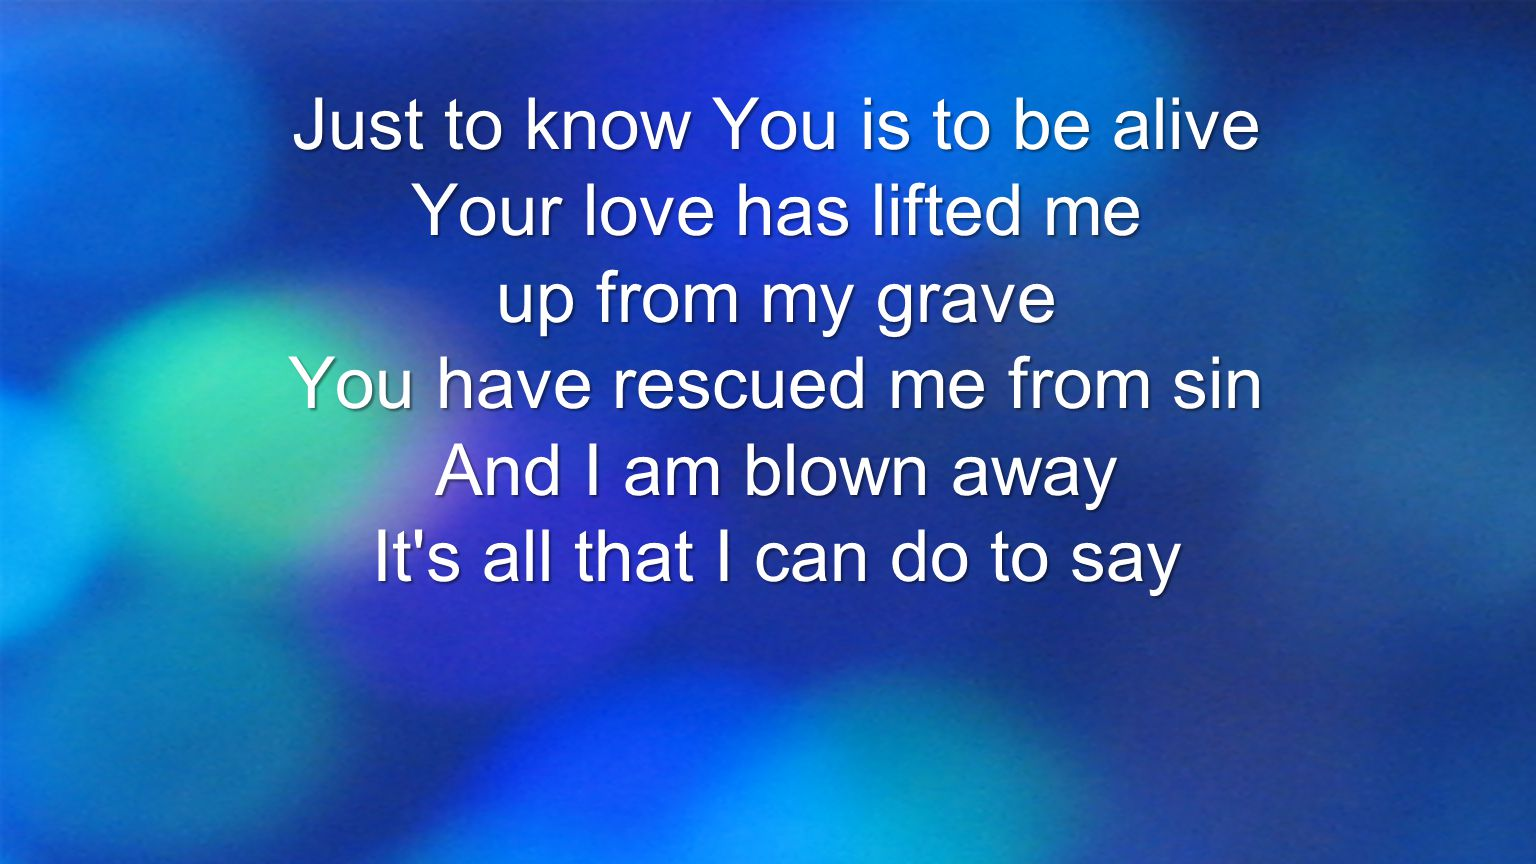 Just to know You is to be alive Your love has lifted me